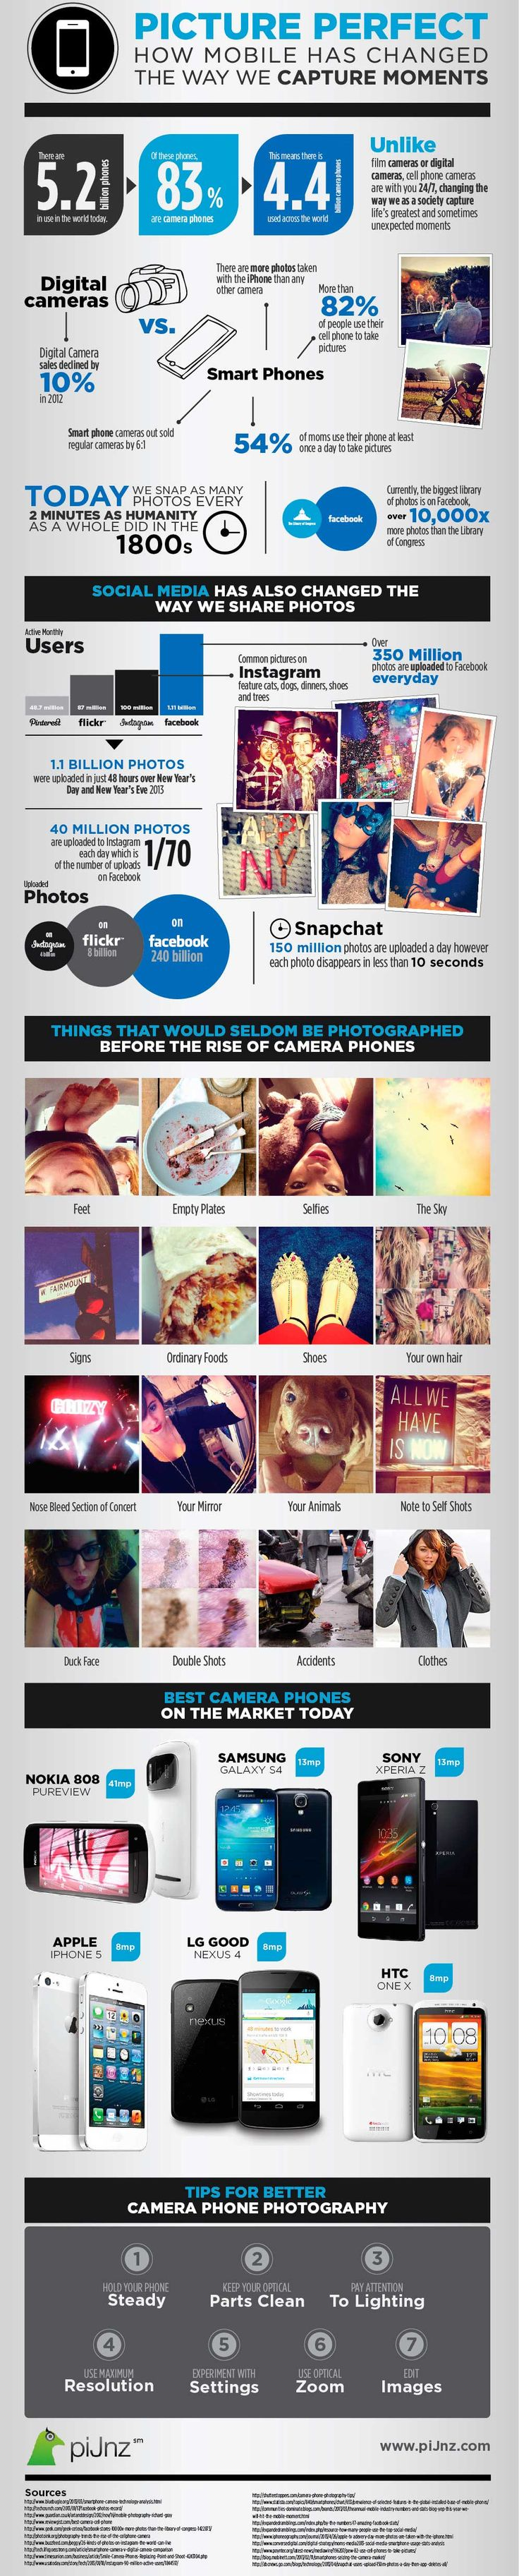 Mobile Photography stats